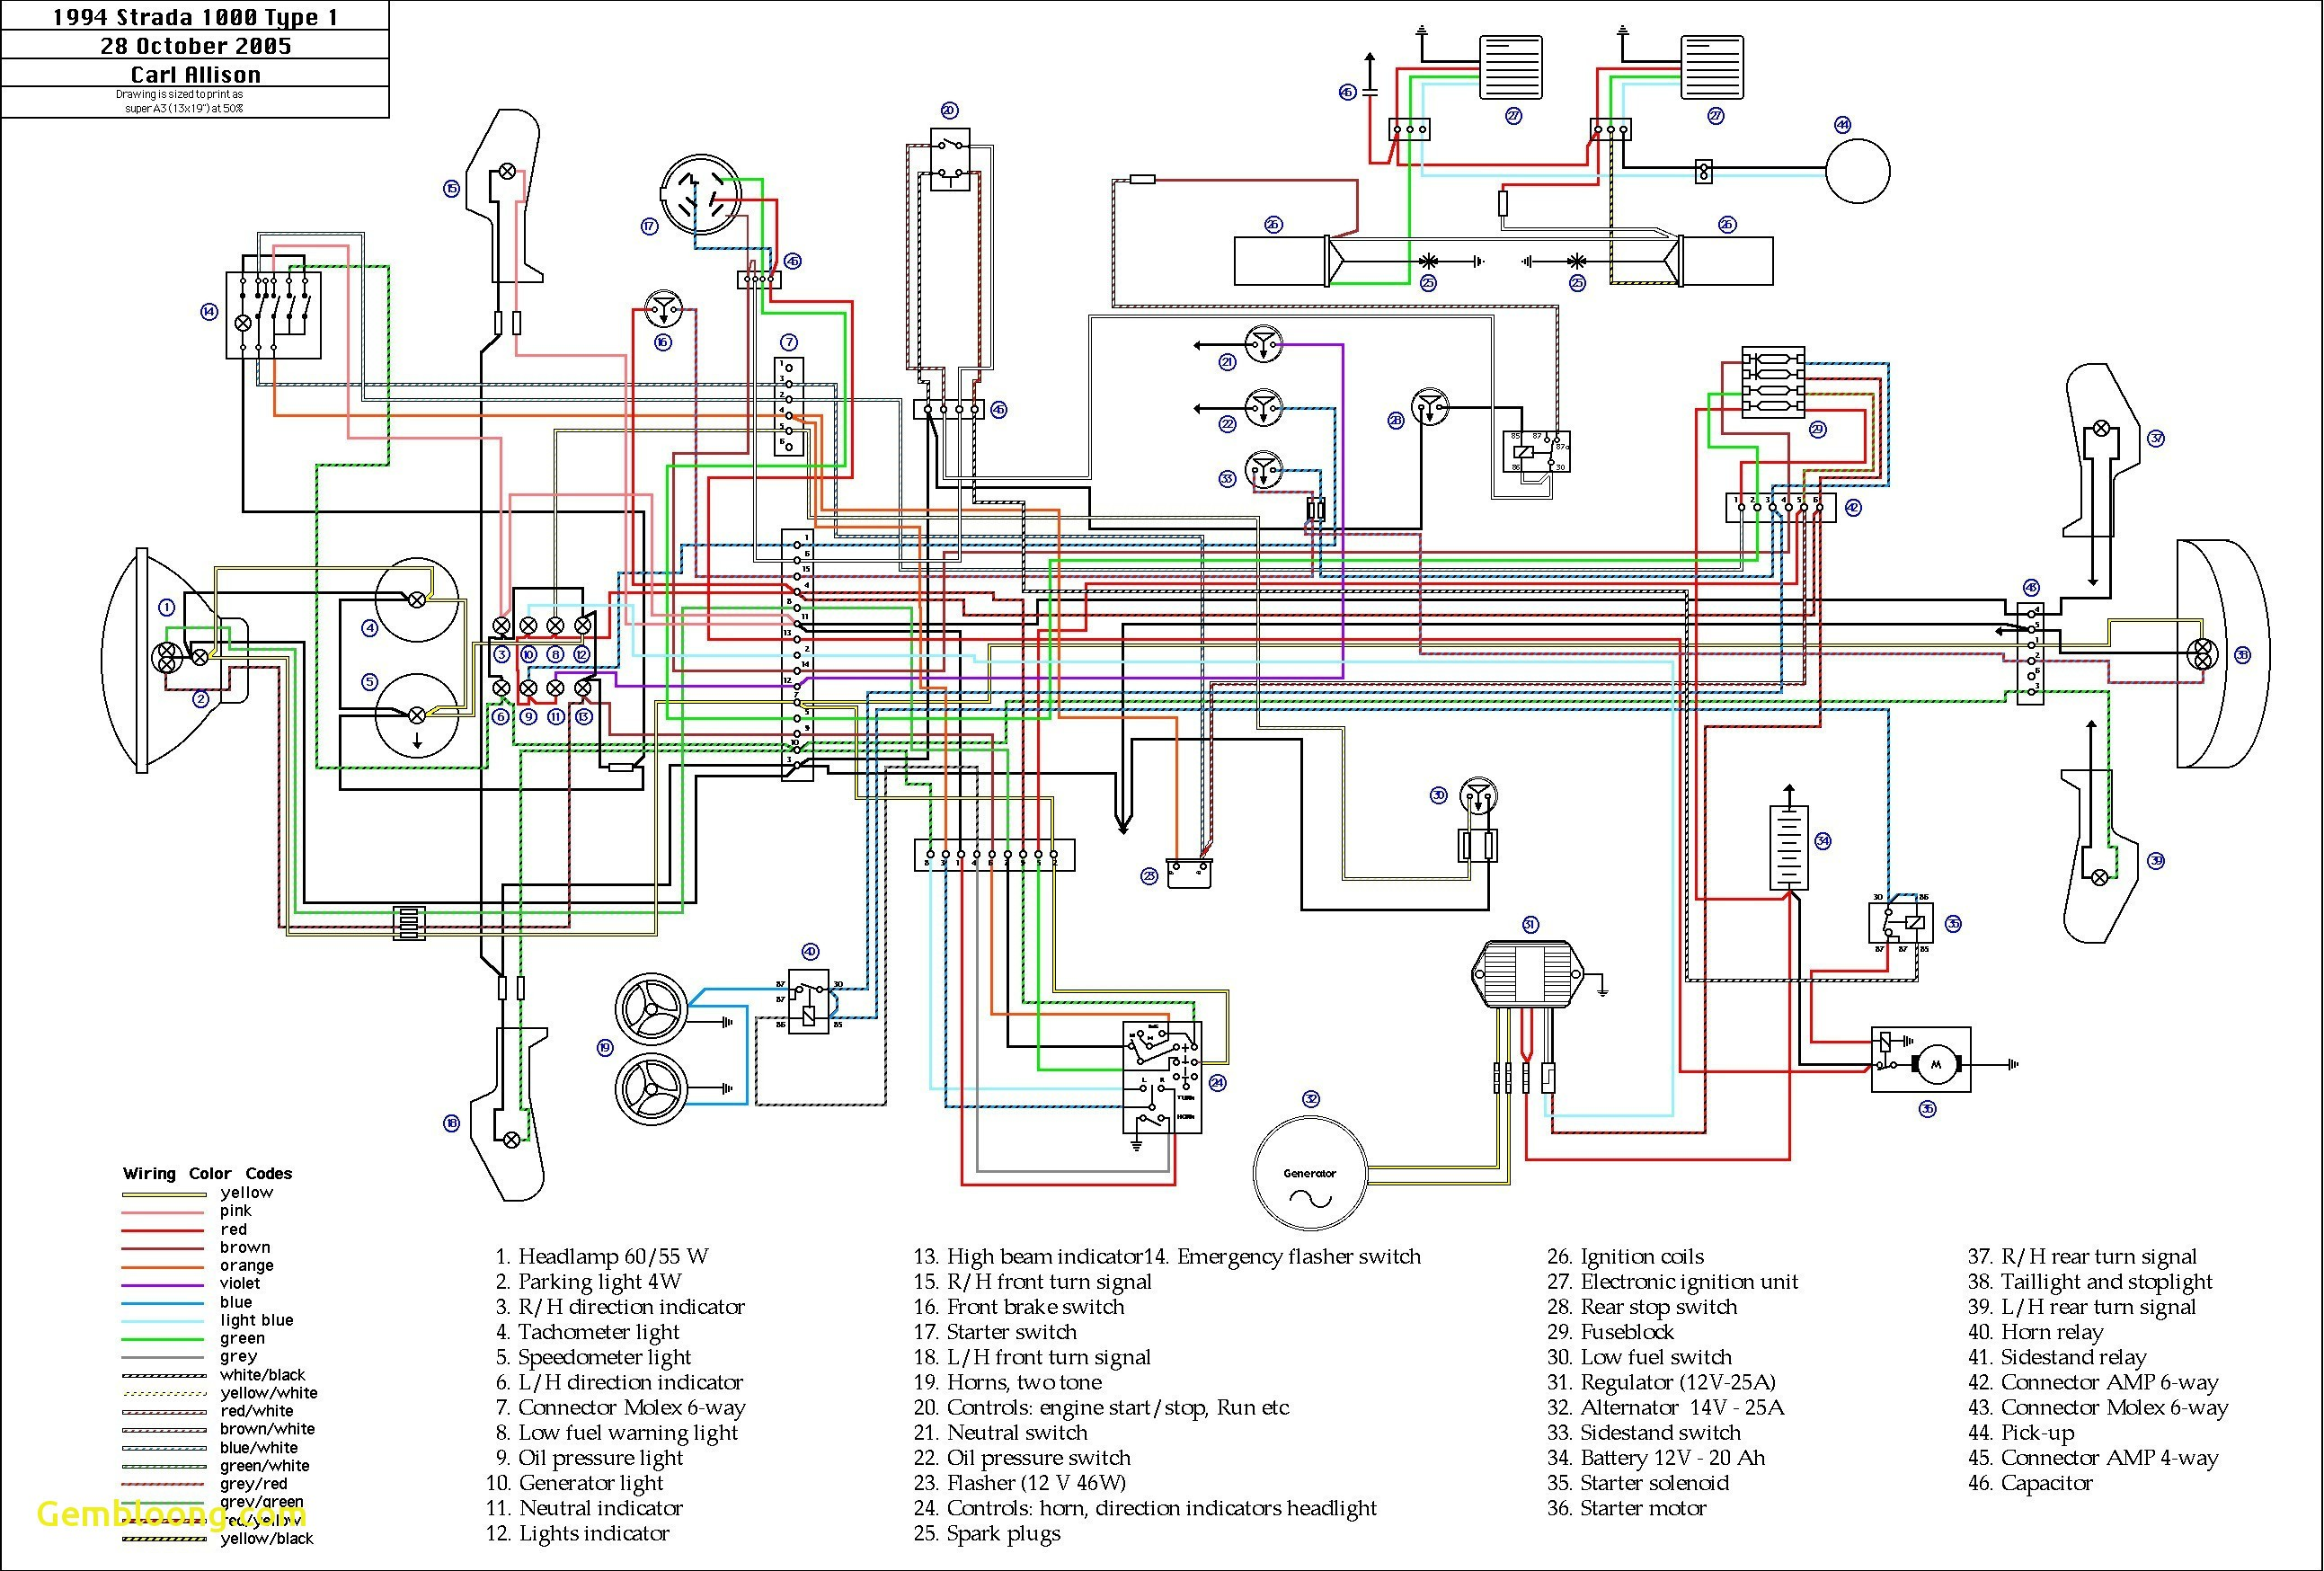 DIAGRAM] Bmw F650gs Wiring Diagram FULL Version HD Quality Wiring Diagram -  CAPITOLAREAWIRING.MAI-LIE.FRcapitolareawiring.mai-lie.fr